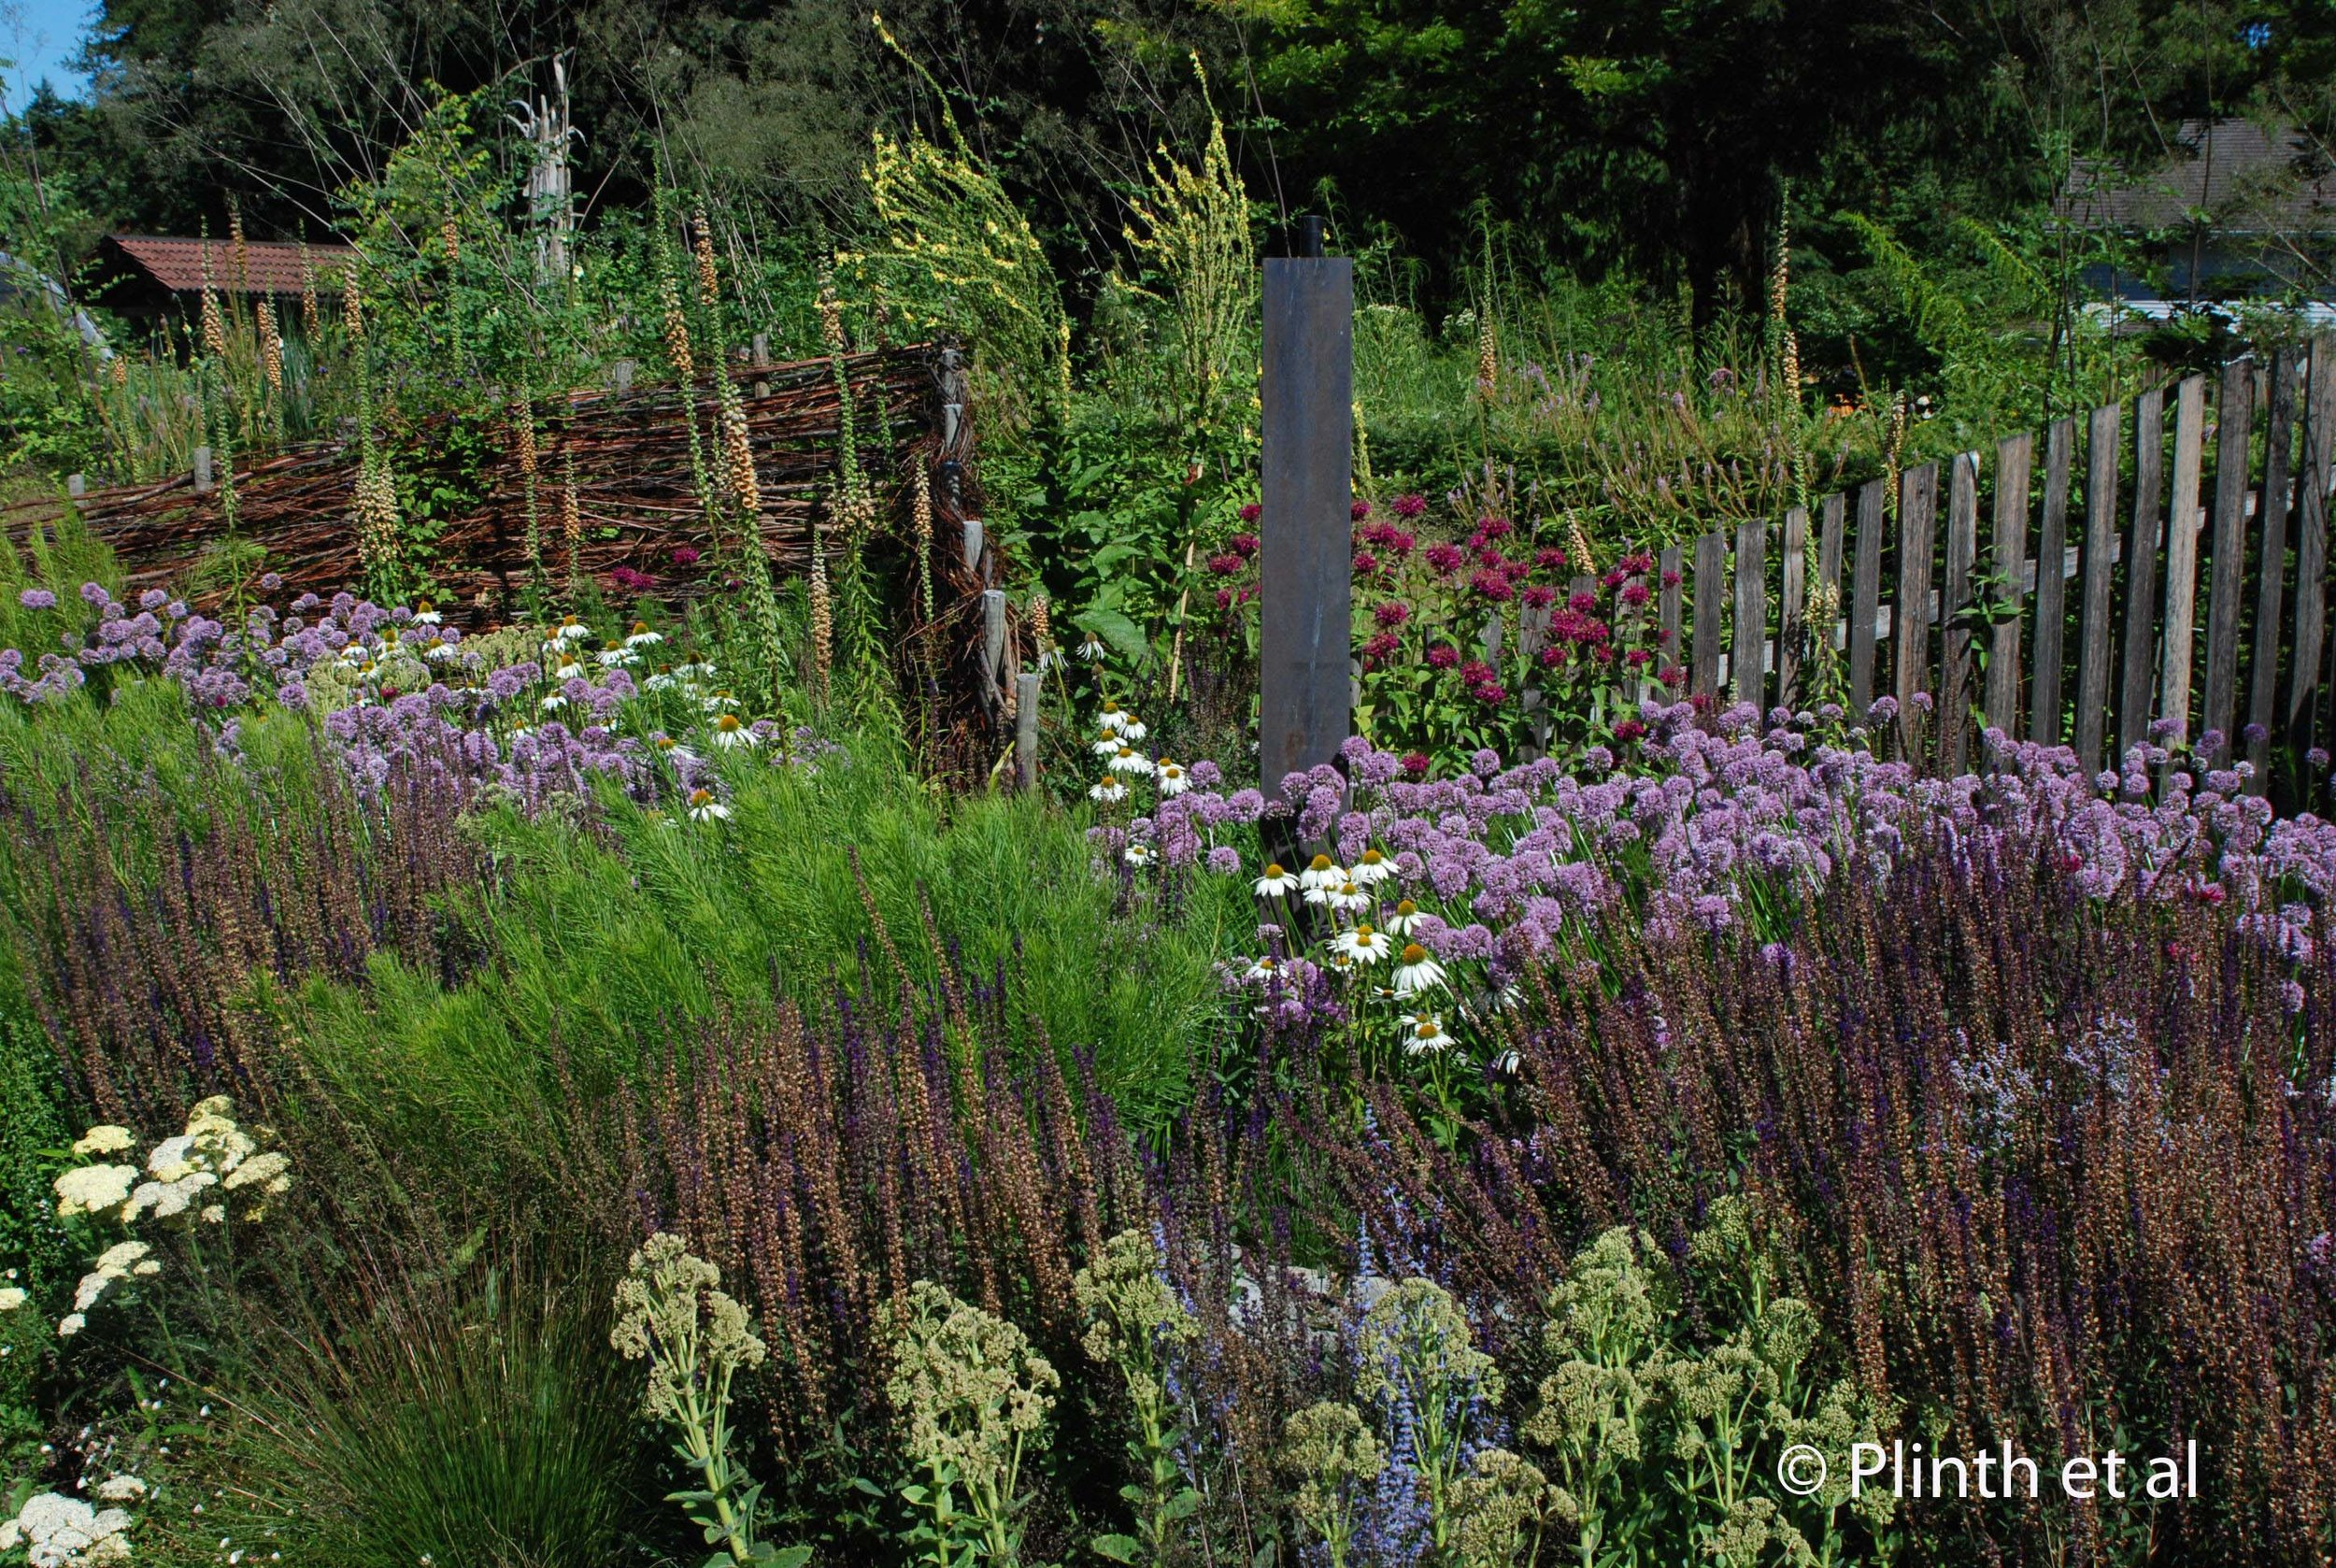 Rustic structures (wattle fence, stone plinth, and zig-zag wood pathway) are skillfully used in harmony with the herbaceous planting, an understated approach that is the signature  mark of the Vrijmoeds.